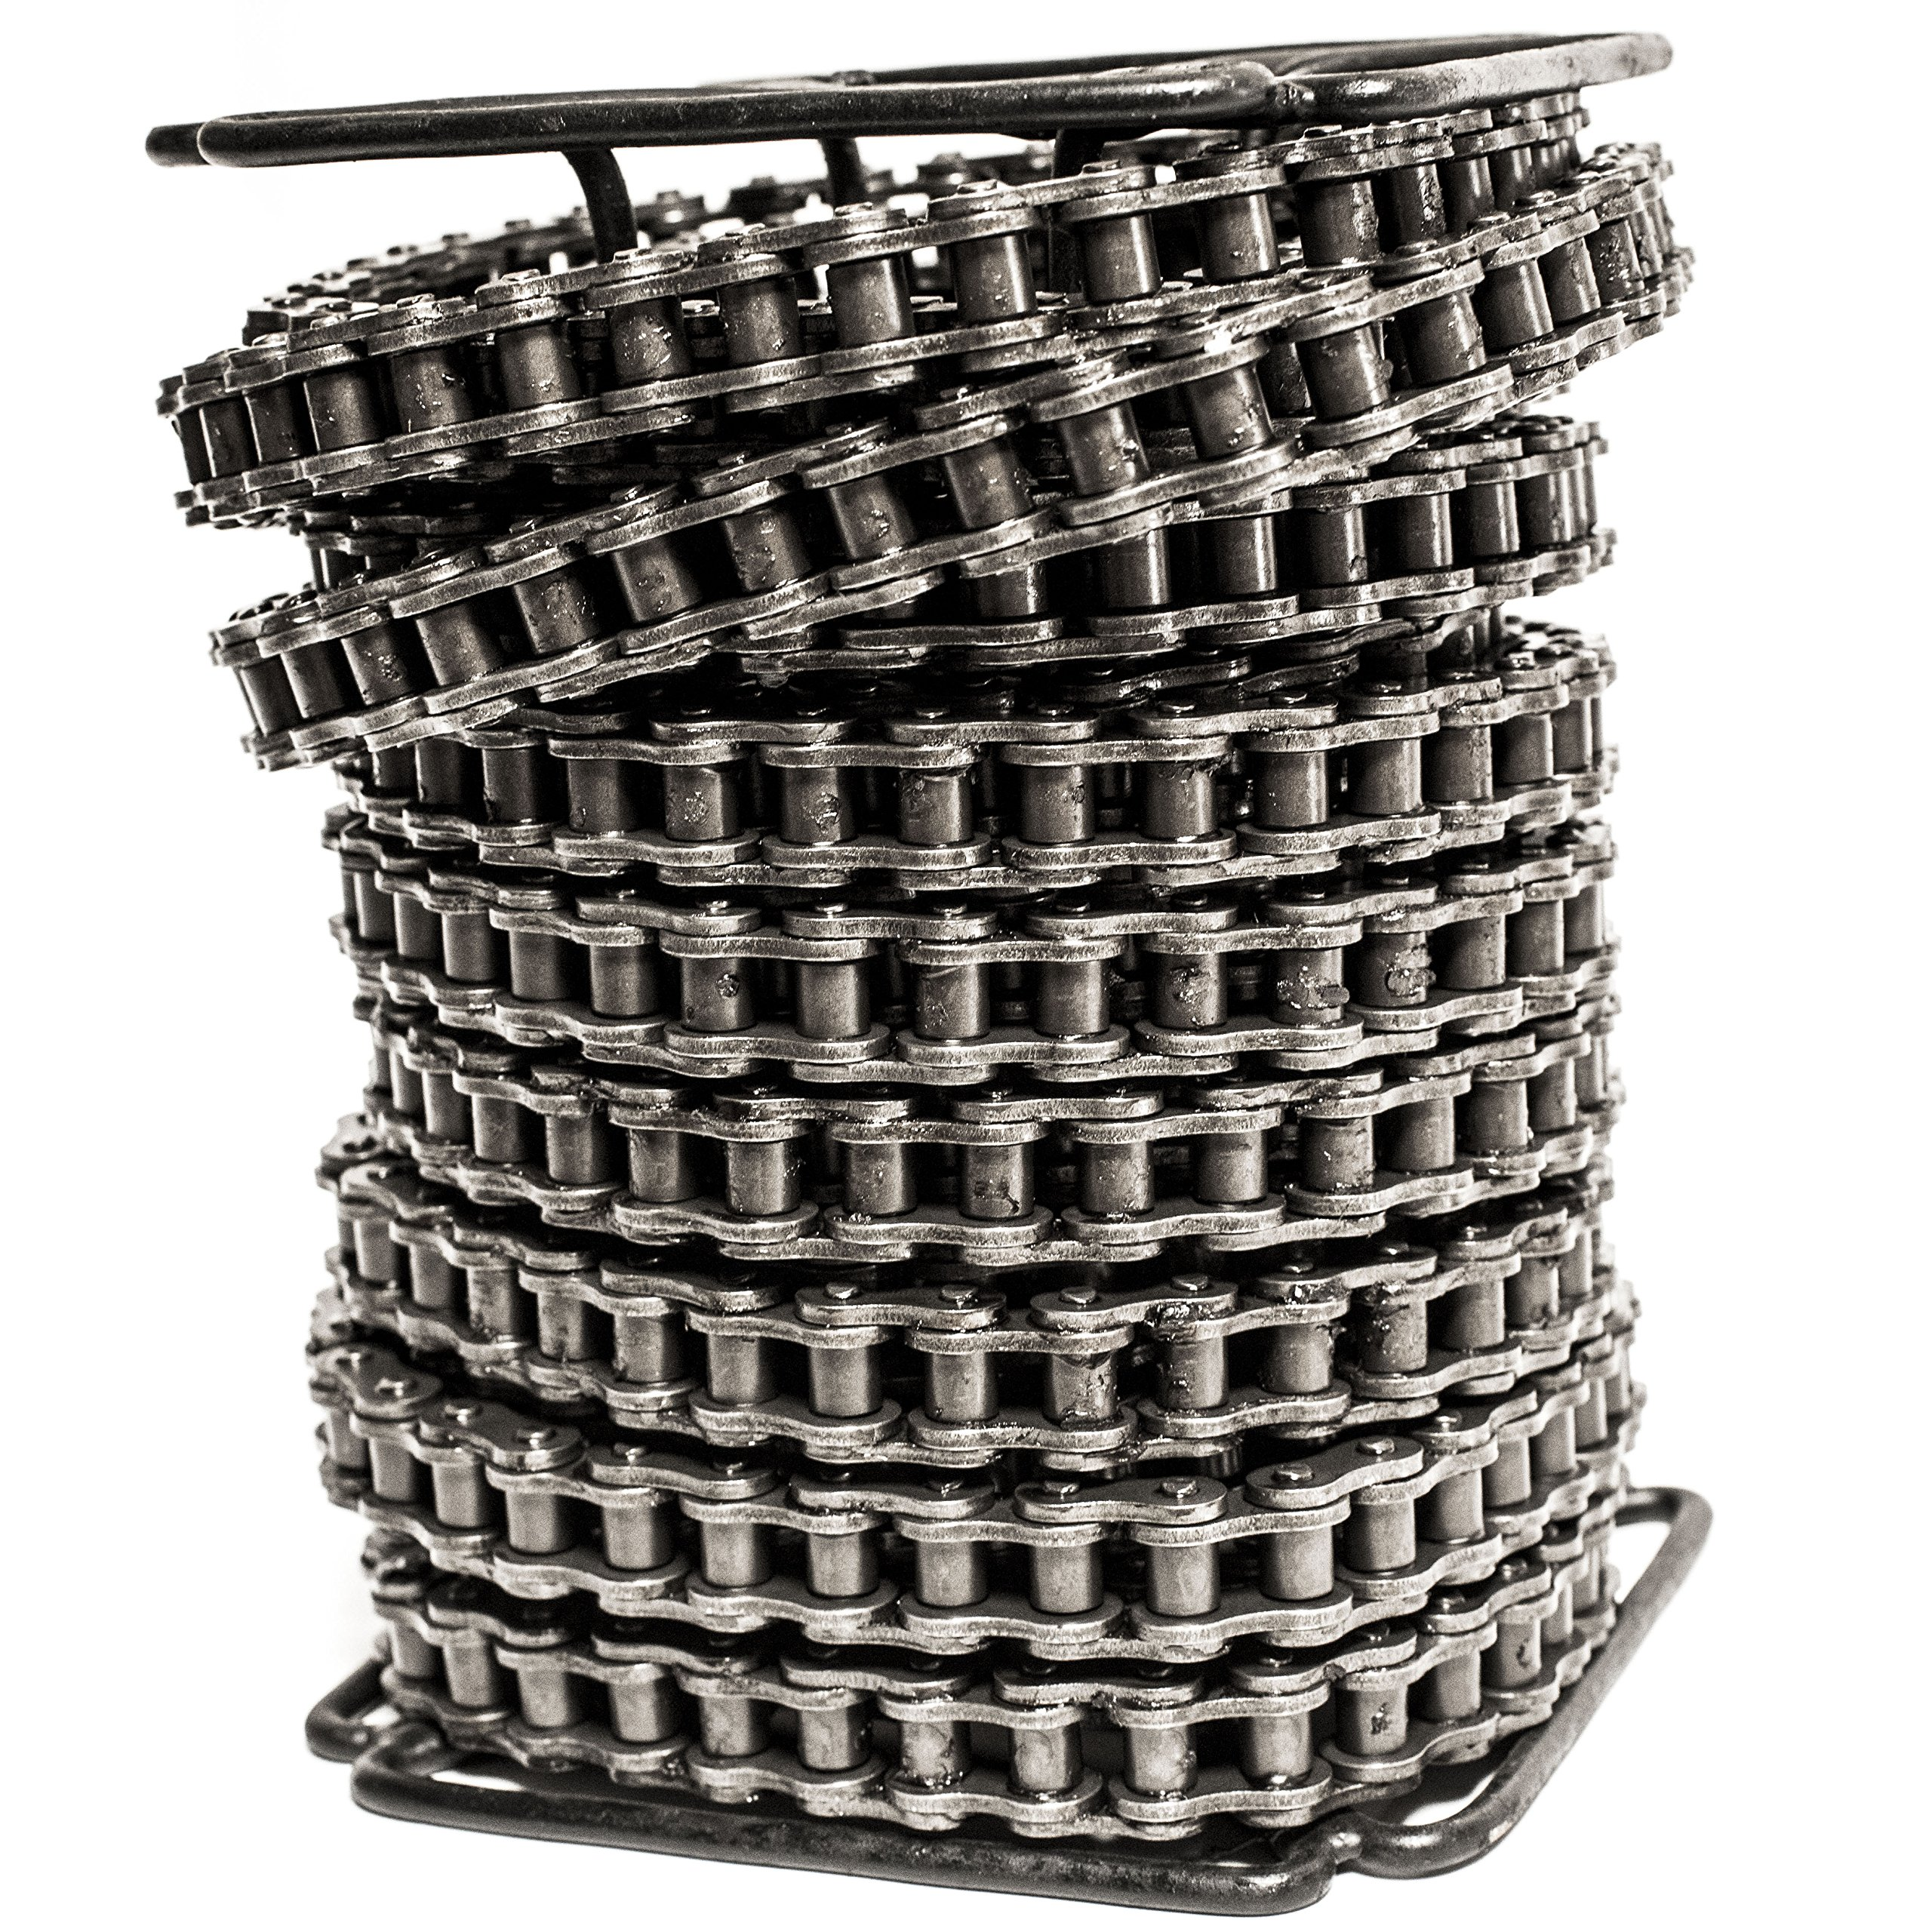 60 Roller Chain 50 Feet with 5 Connecting Links